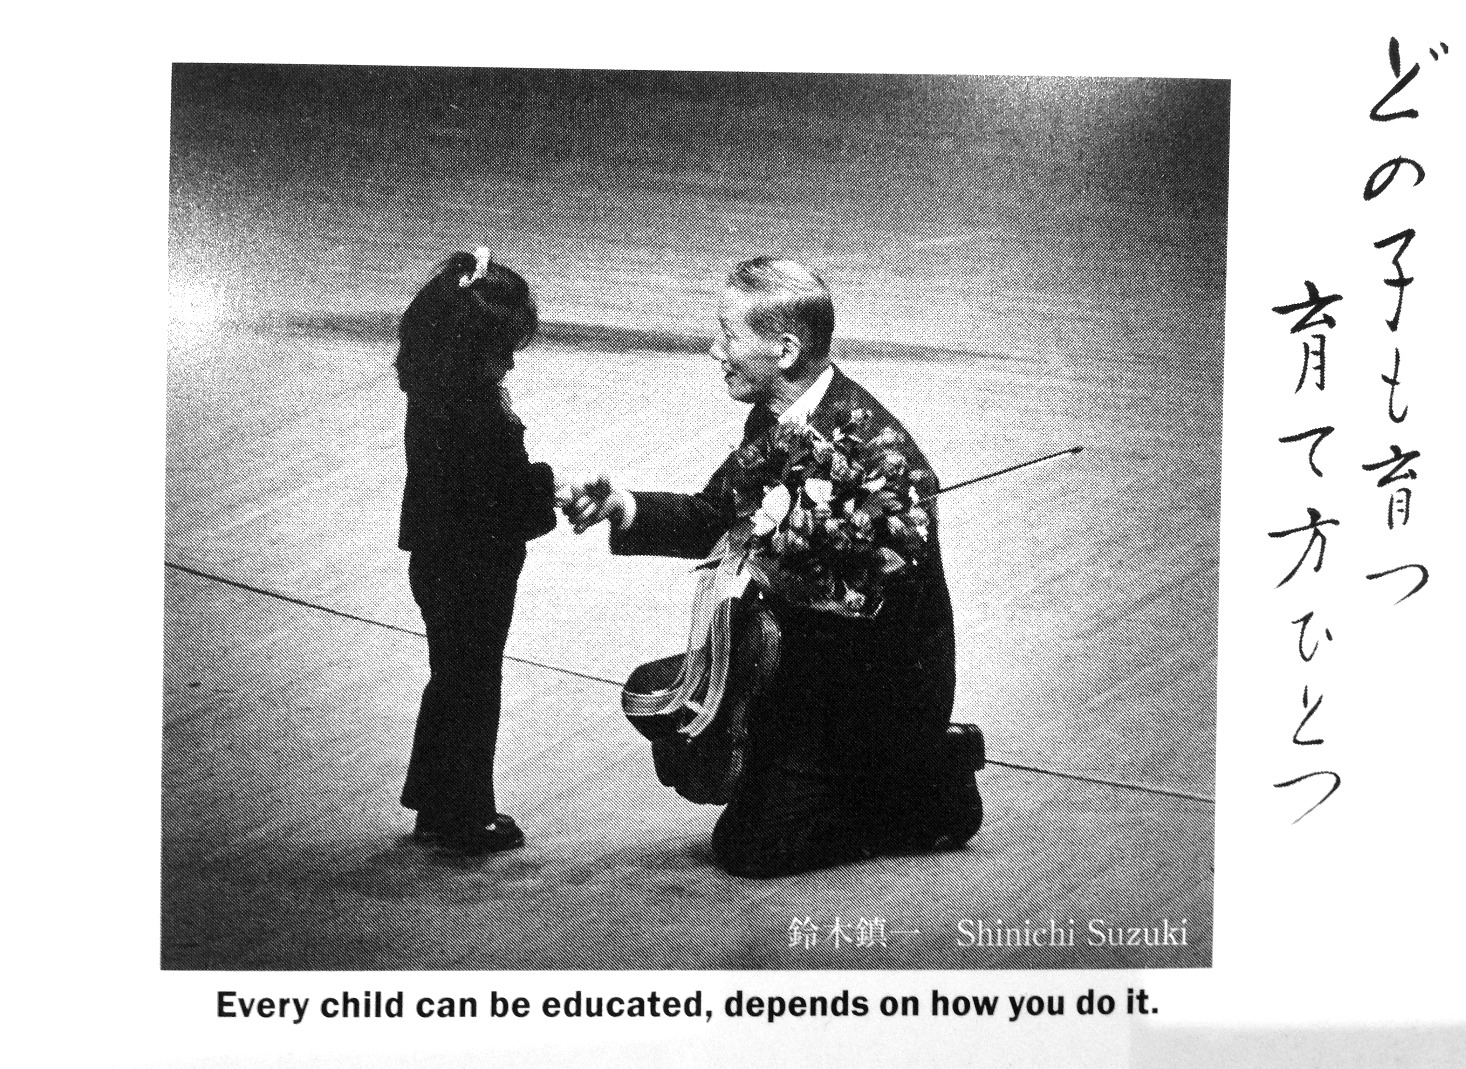 Every Child Can